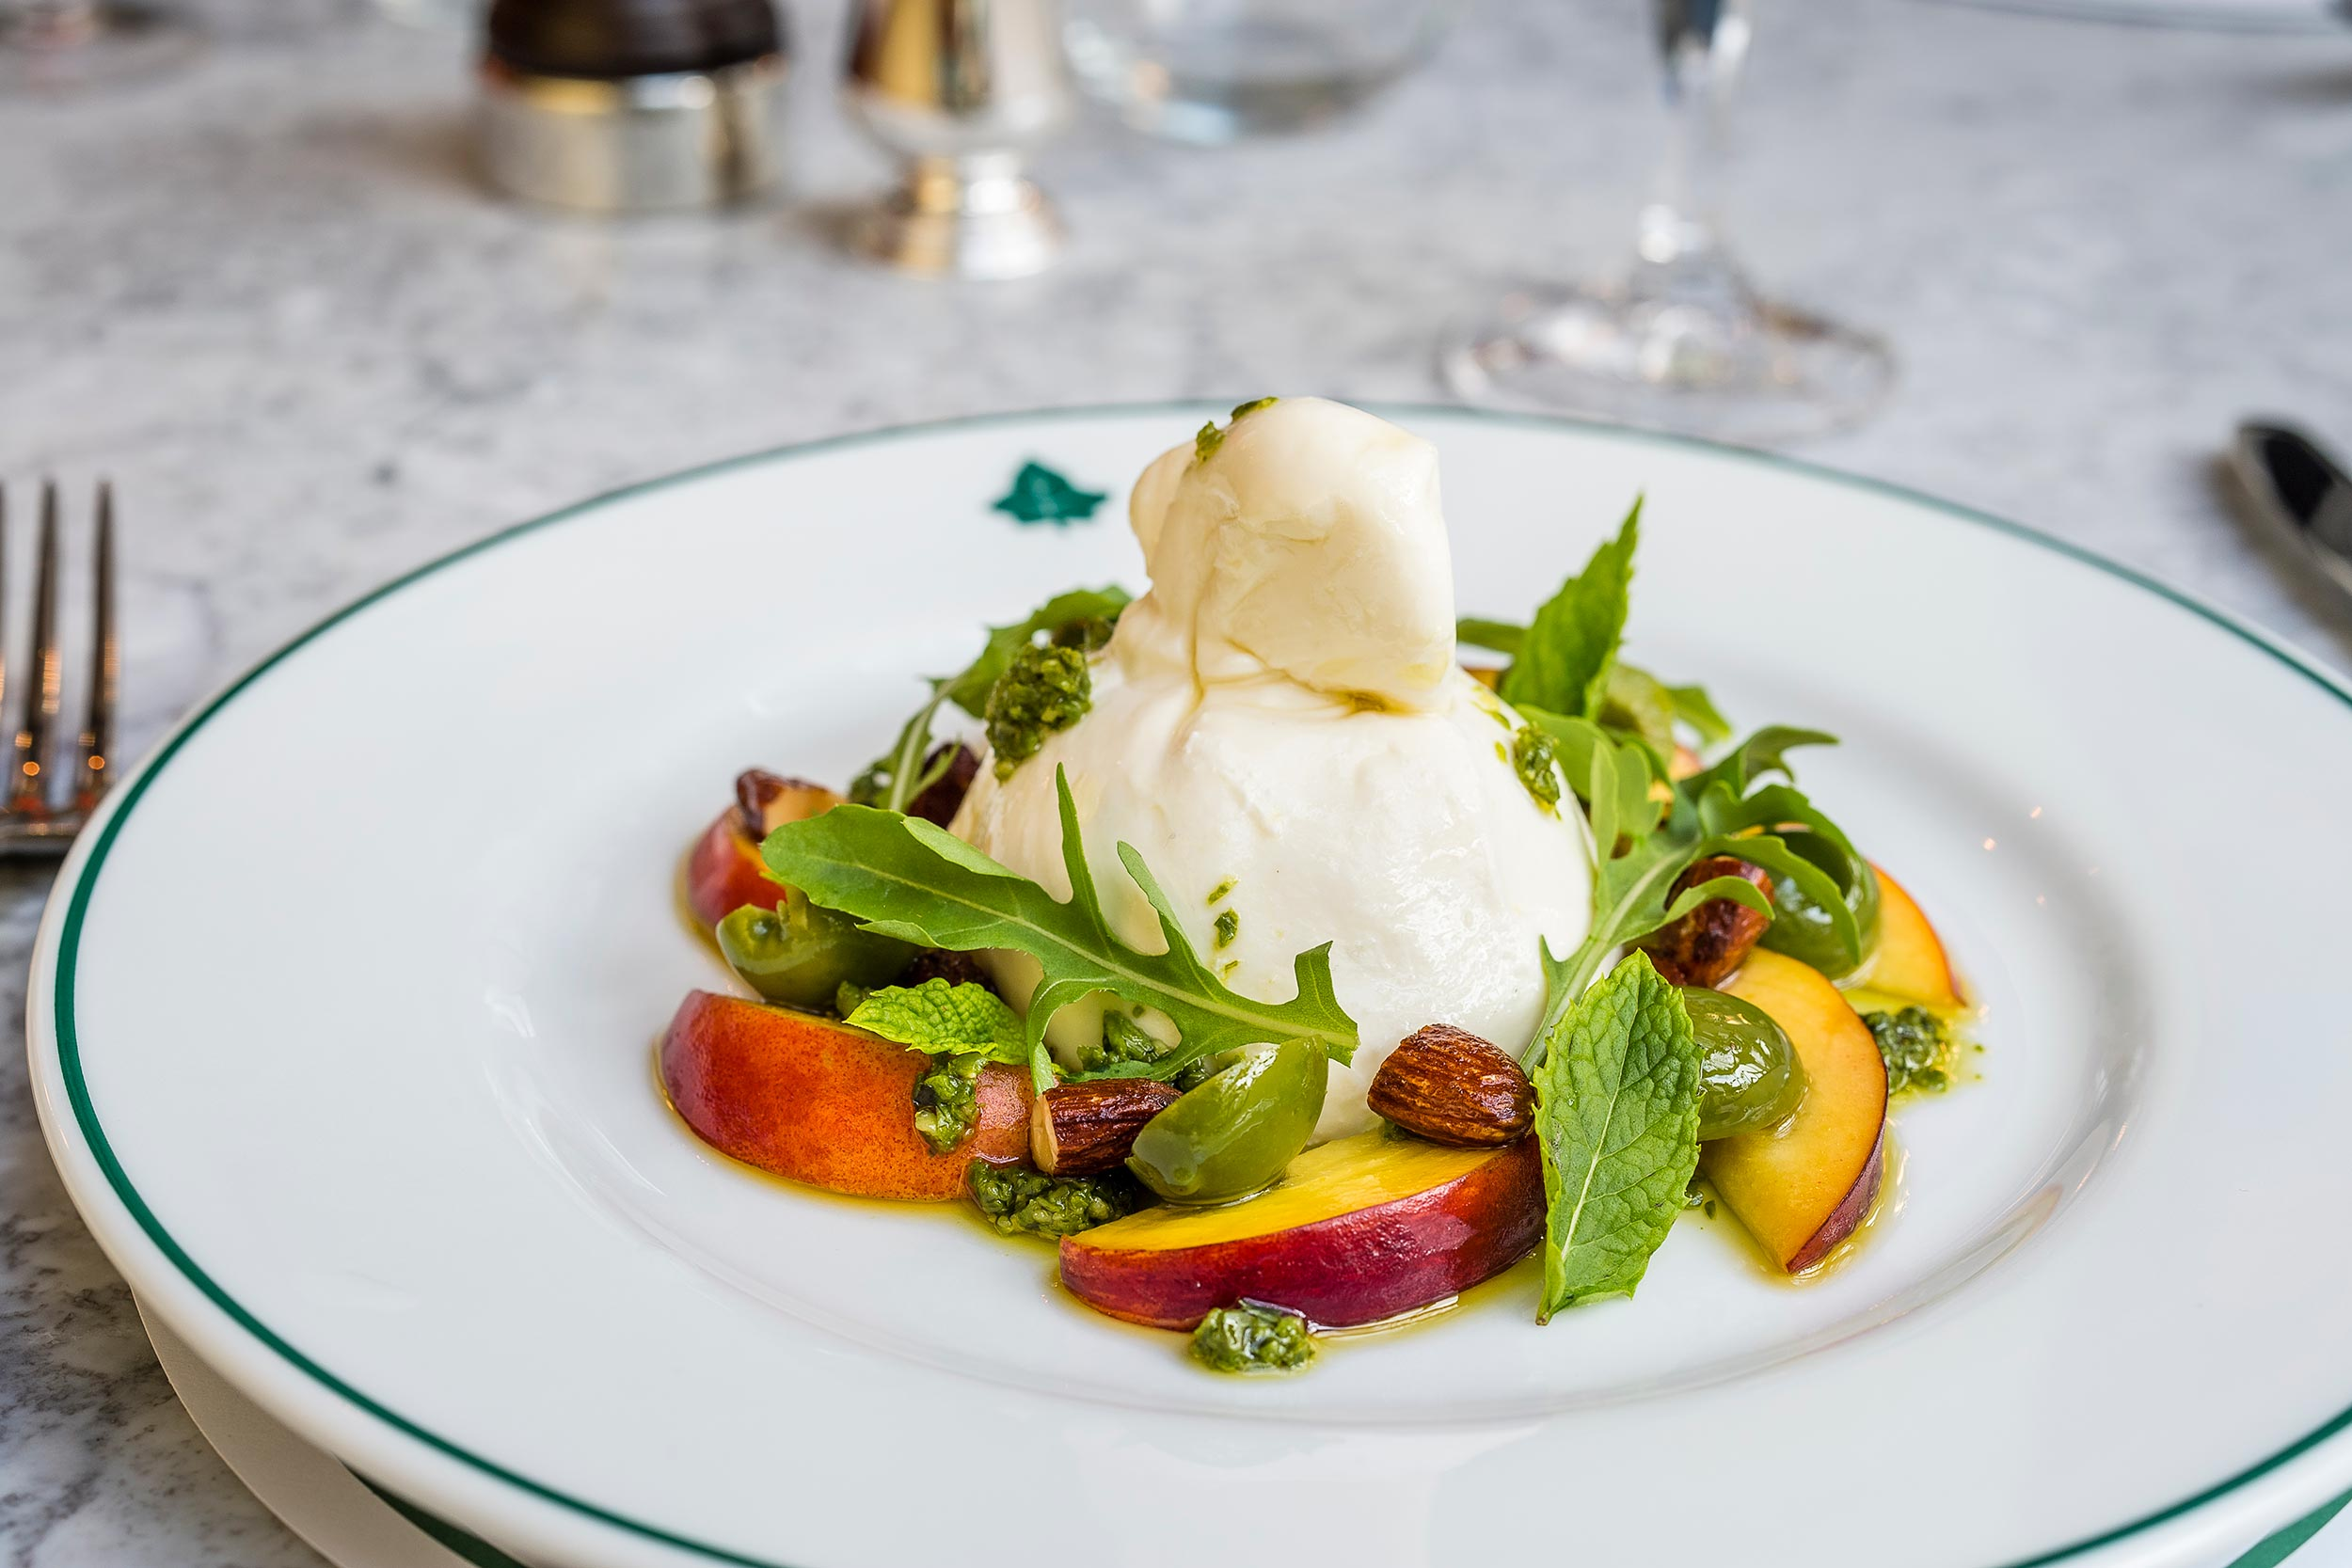 The Ivy City Garden - Burrata with Nocellara olive, pesto, rocket and almonds - The Ivy City Garden